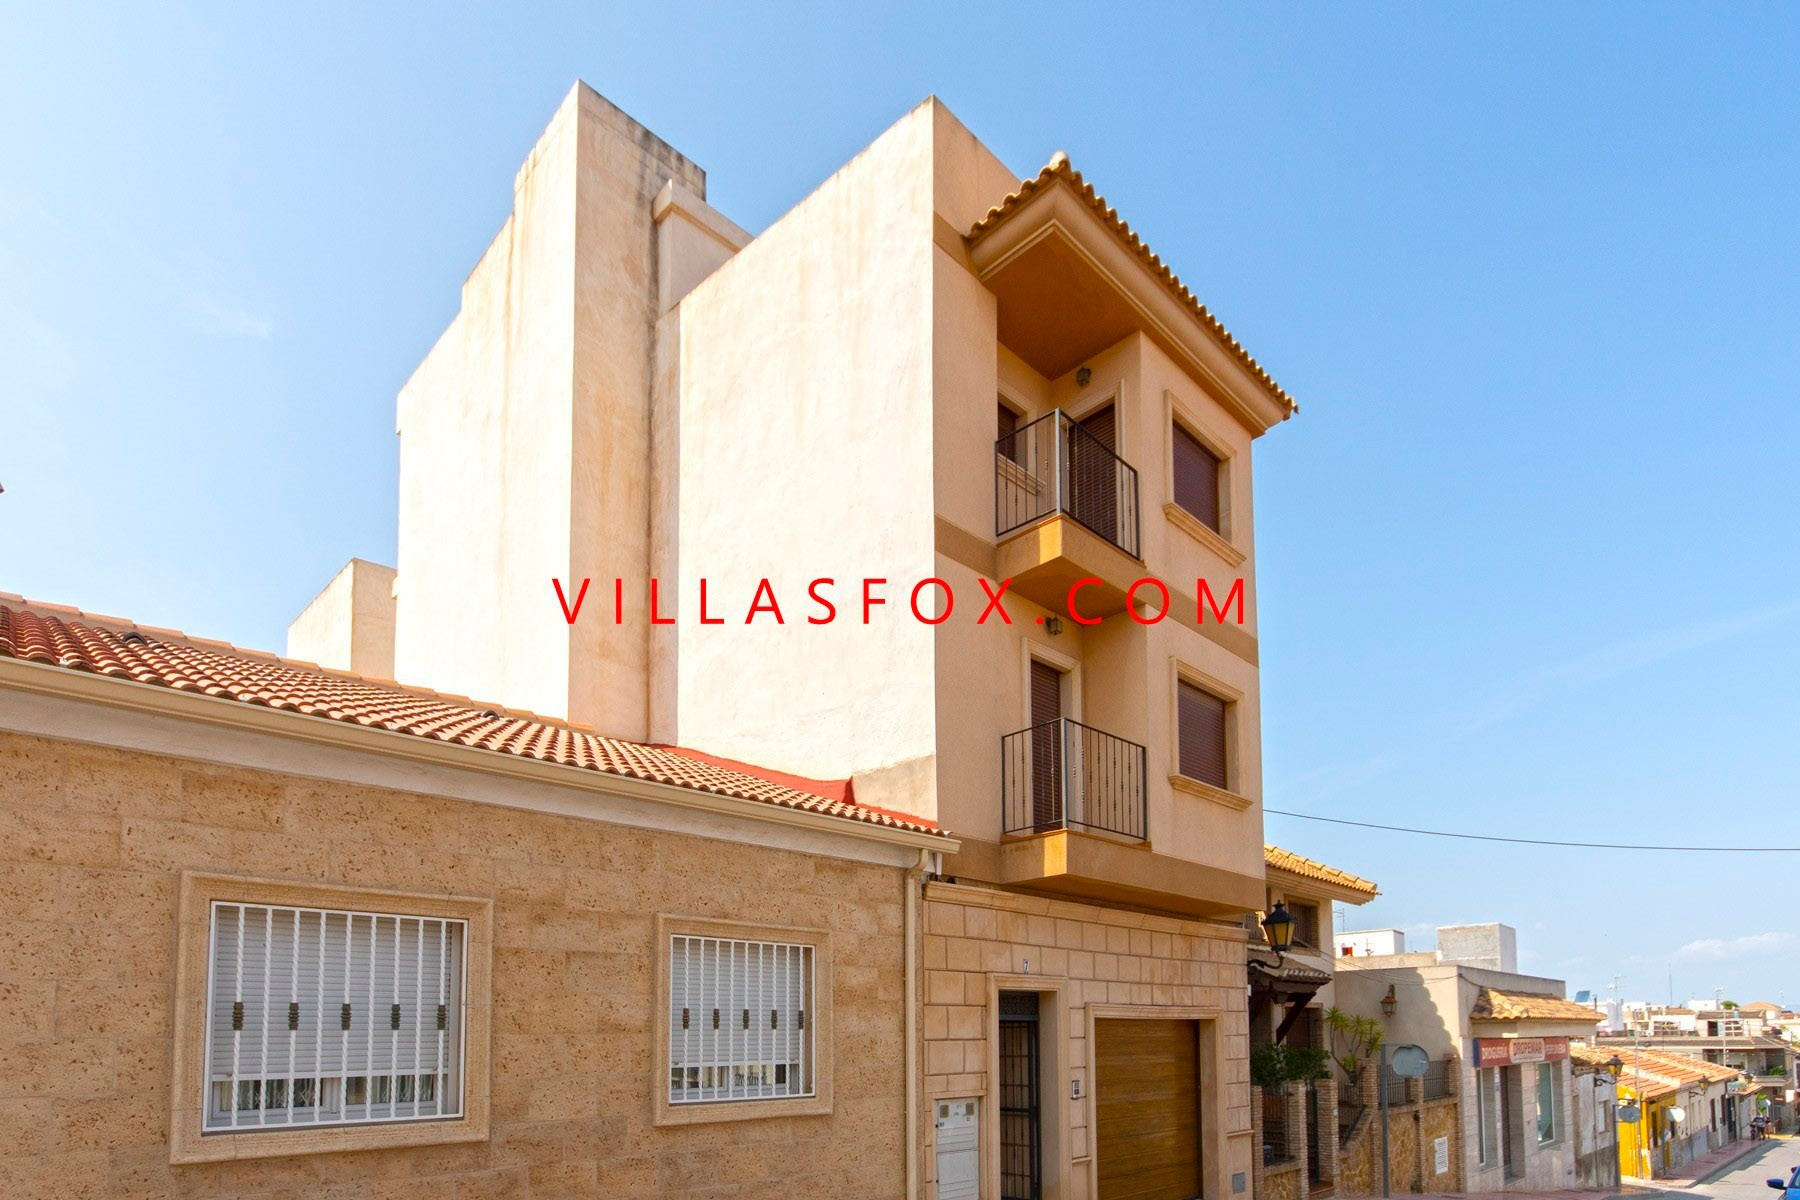 San Miguel de Salinas townhouse with large garage and solarium on 5 levels with lift